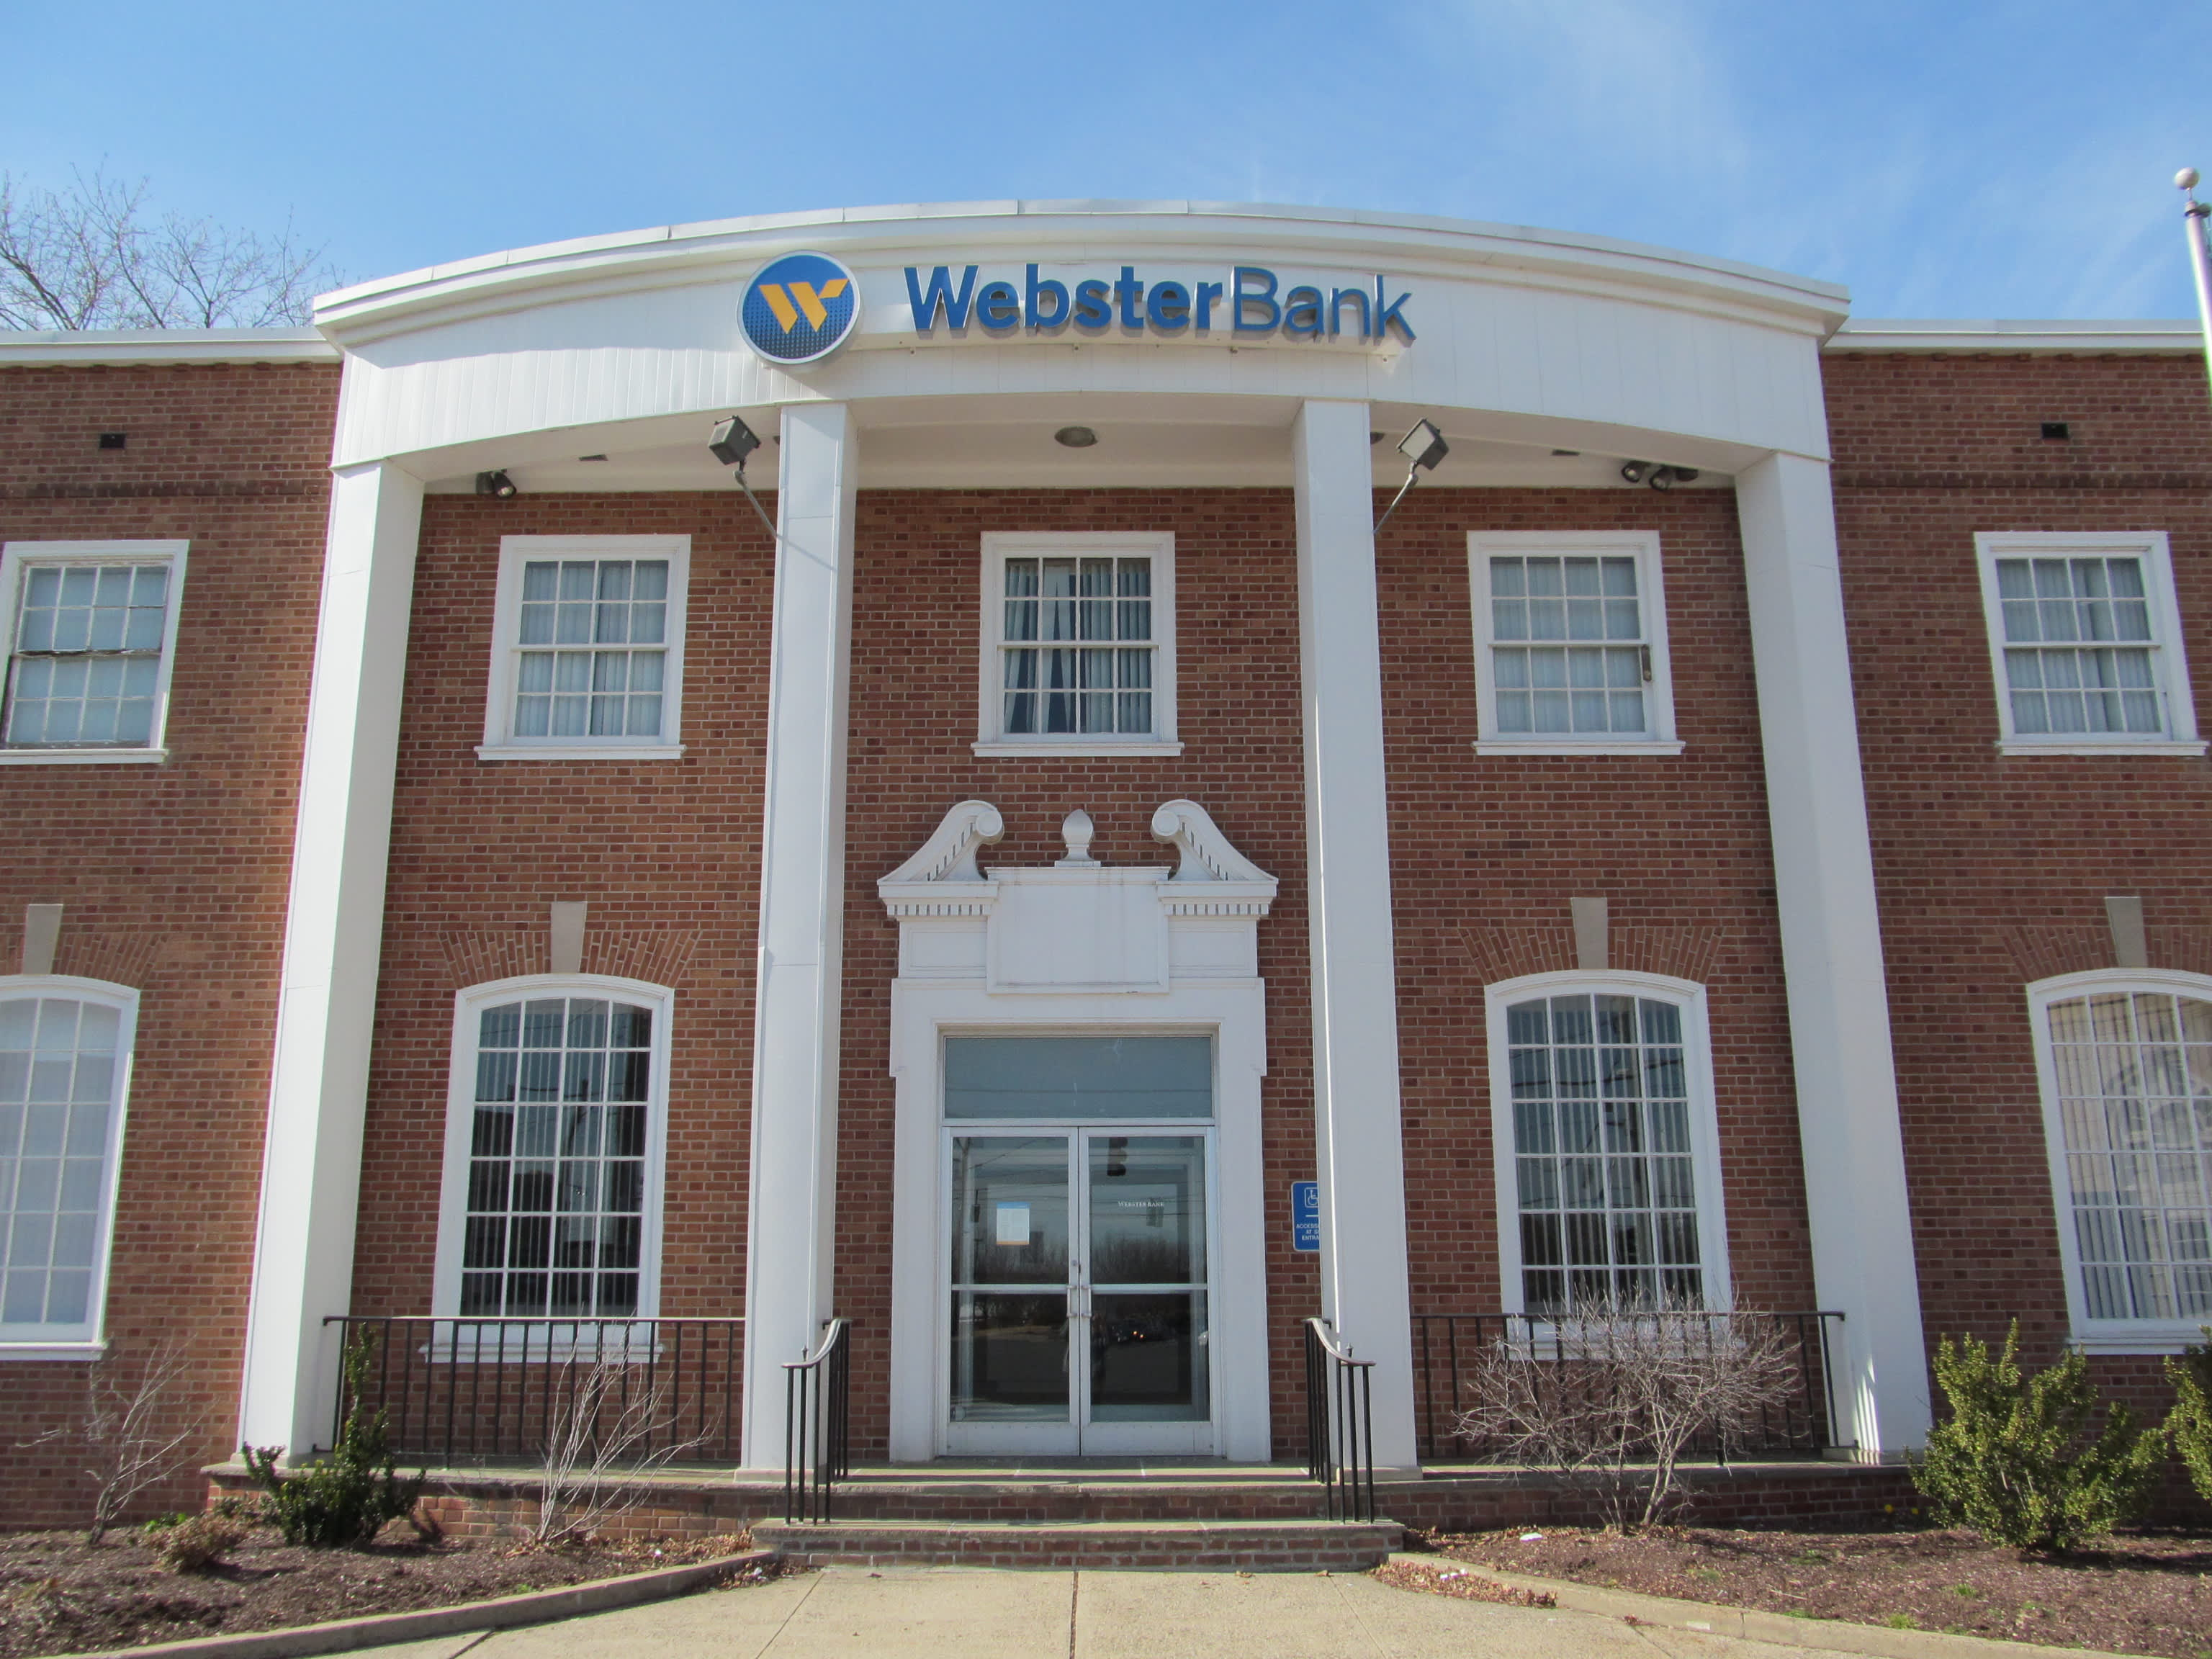 Webster Bank branch in Hamden, CT